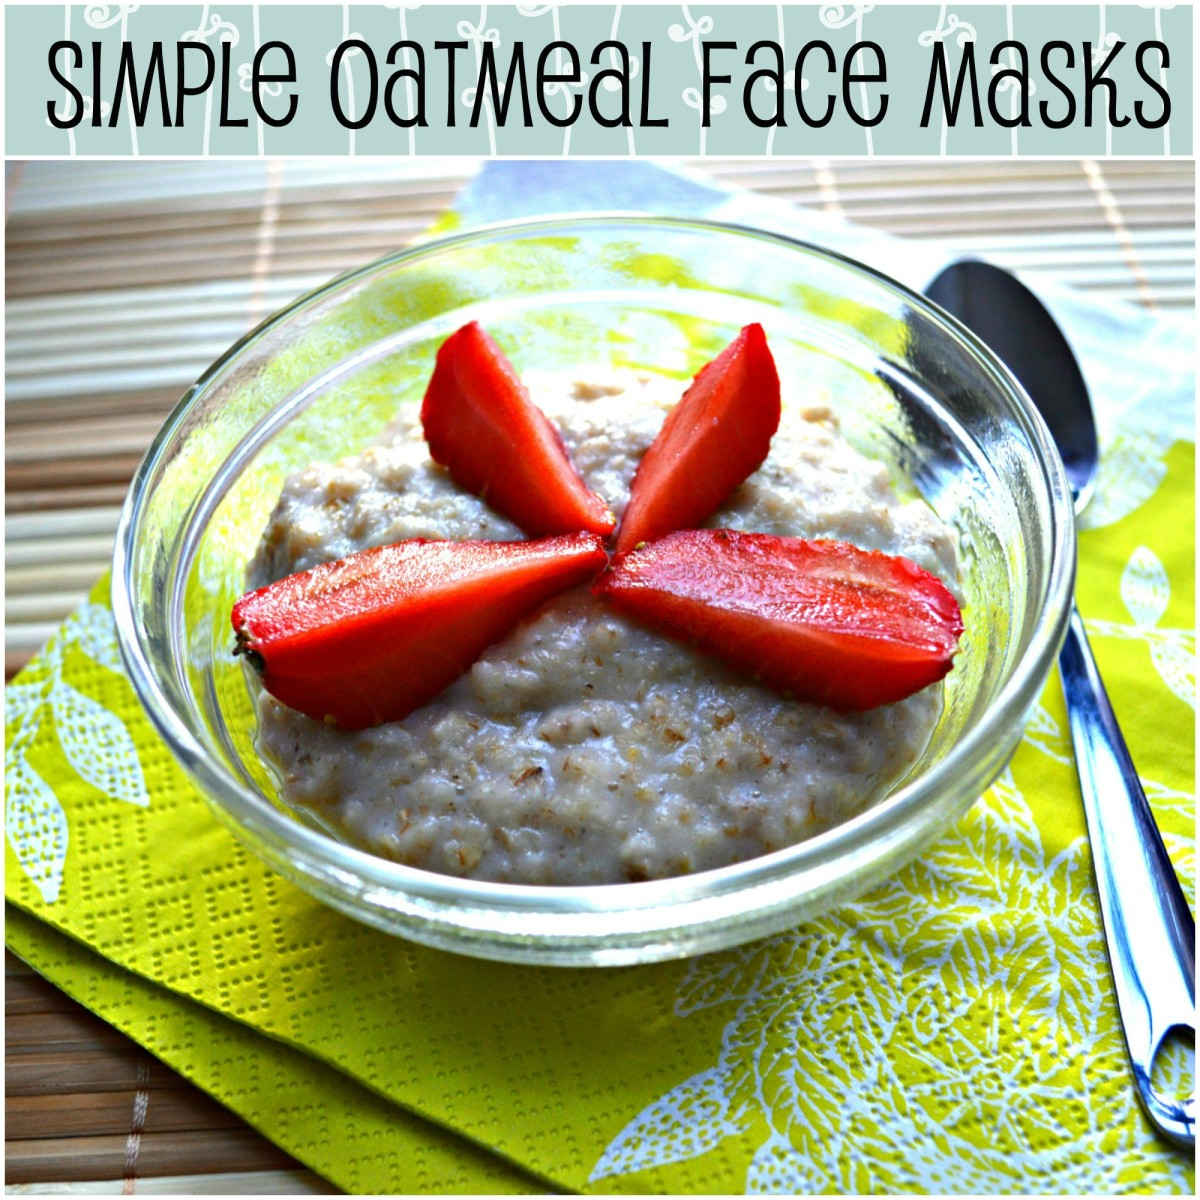 Slather a luxurious layer of wholesome oatmeal on your face and see what wonders it can do your skin! Three awesome face masks below.